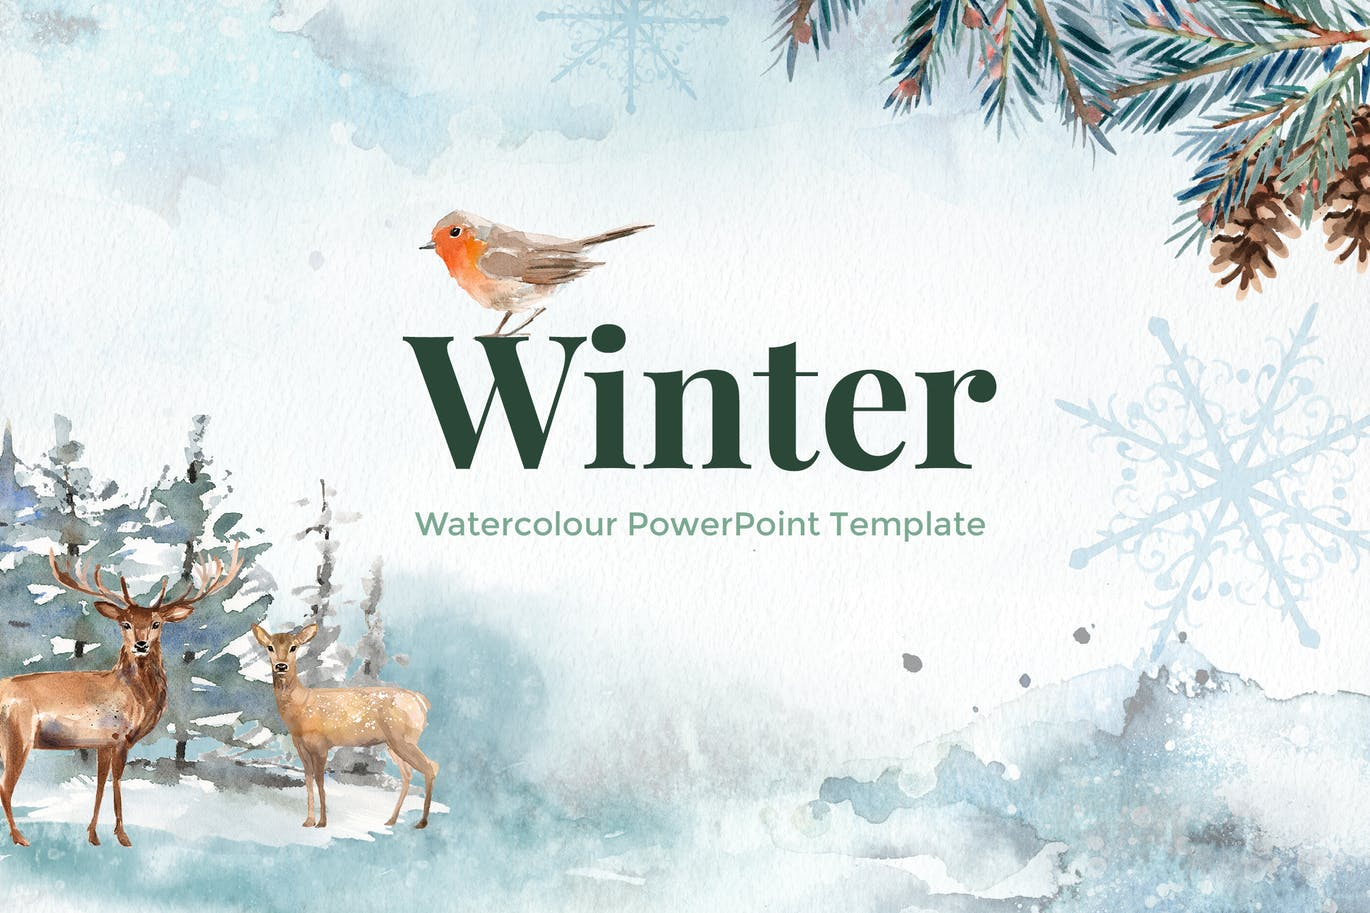 Winter watercolour powerpoint template by site2max on envato winter watercolour powerpoint template by site2max on envato elements alramifo Choice Image